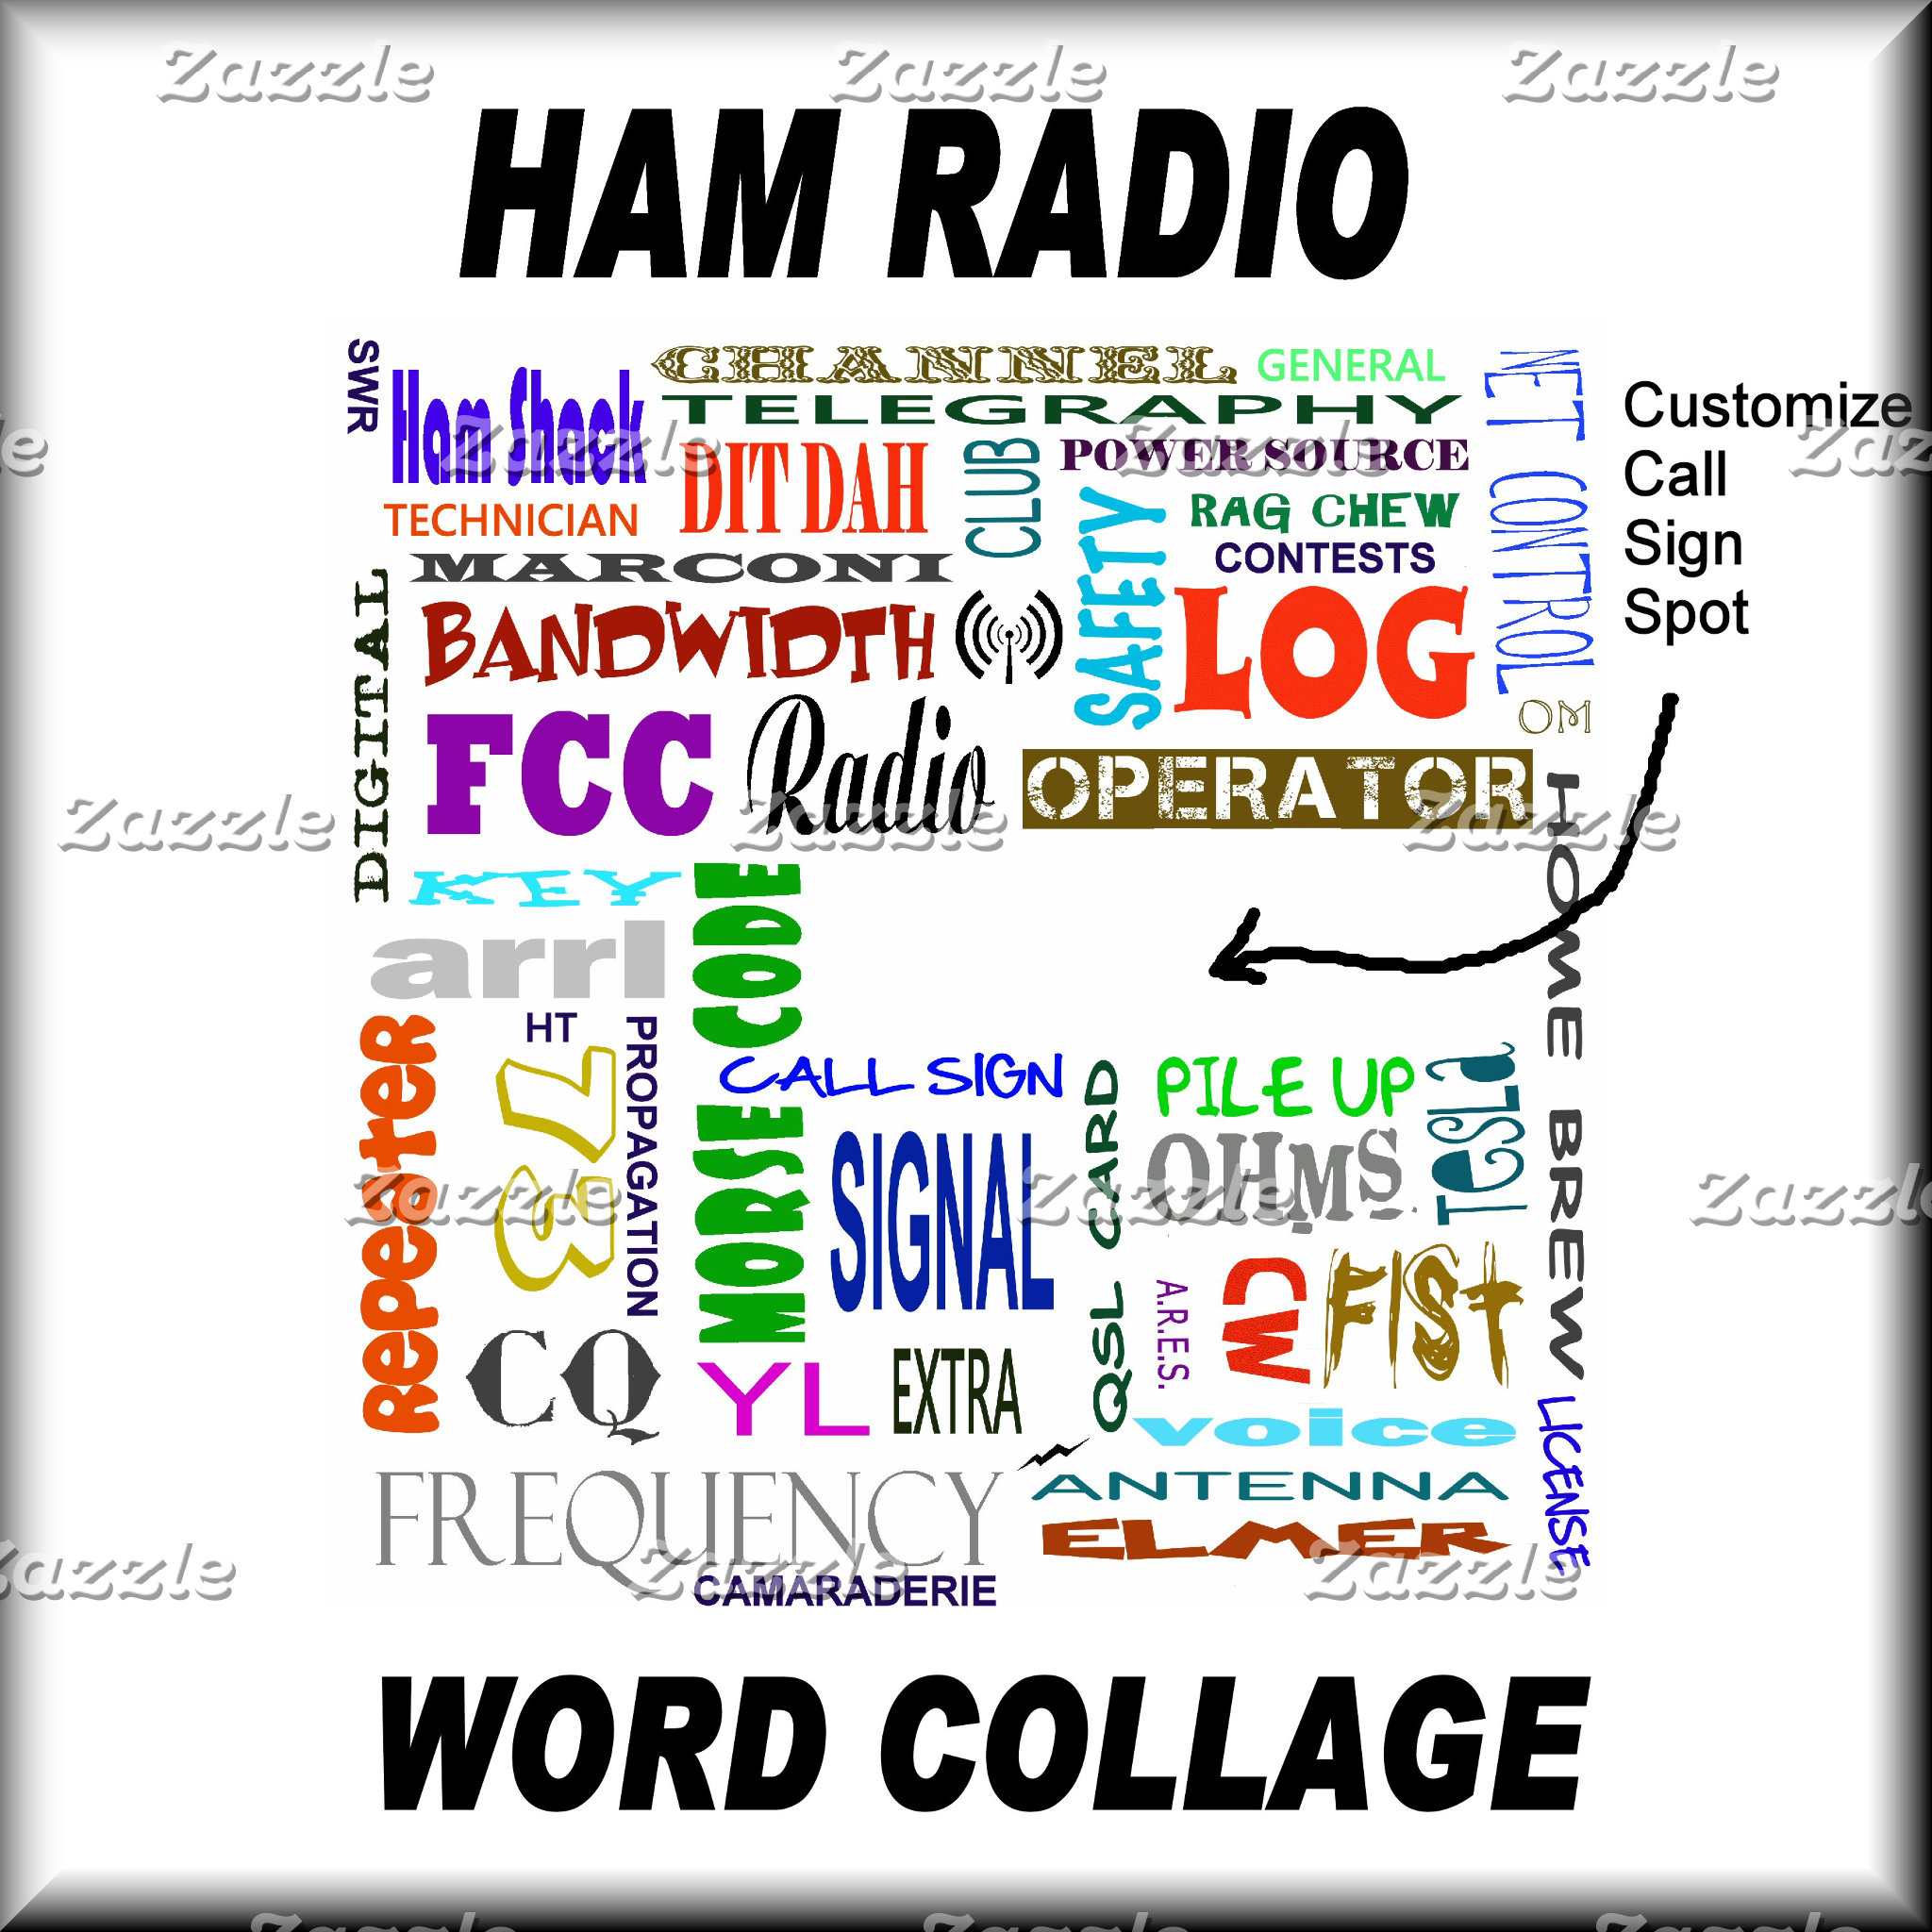 HAM RADIO WORD COLLAGE